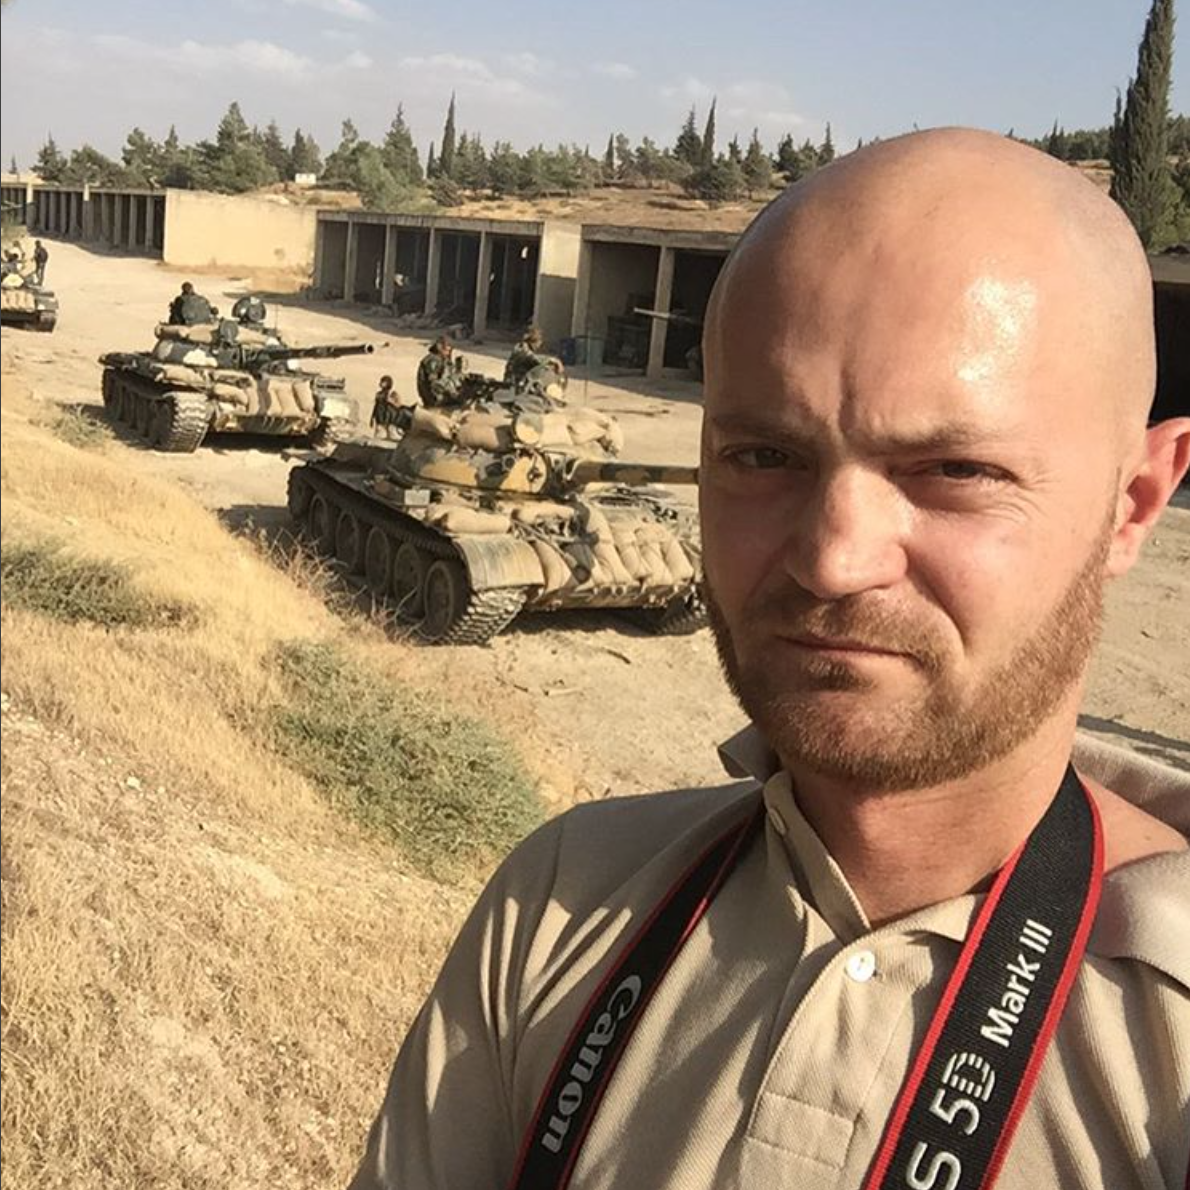 How Russian Soldiers Live in Syria